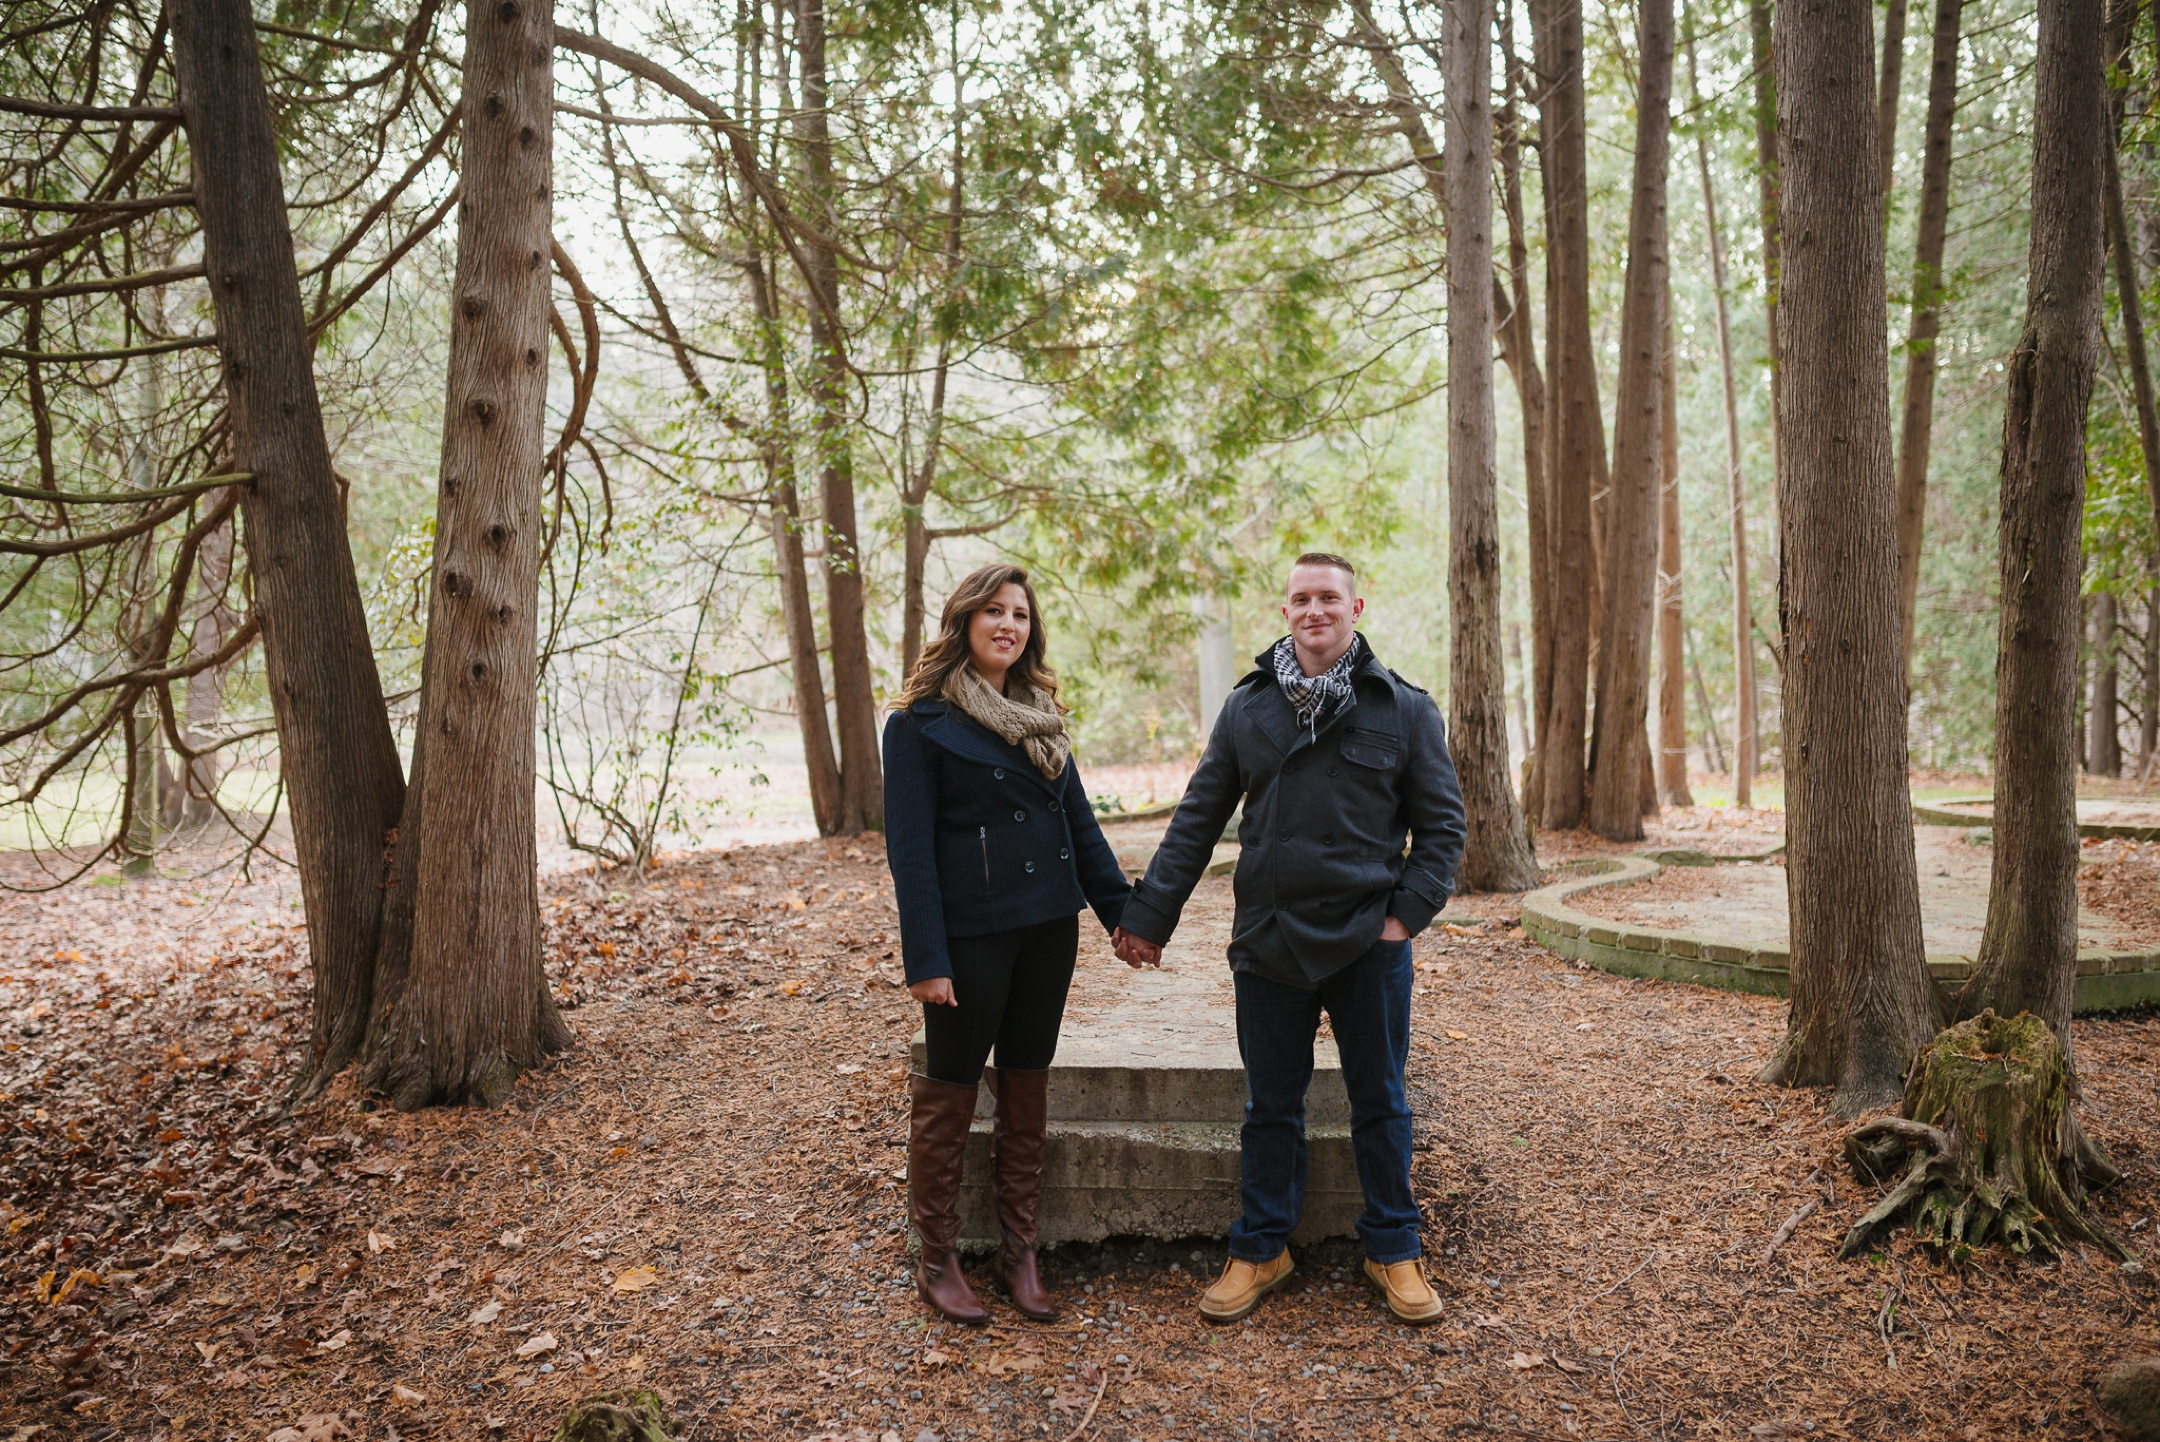 Durham Region, Cullen Gardens Whitby Engagement Session in the woods